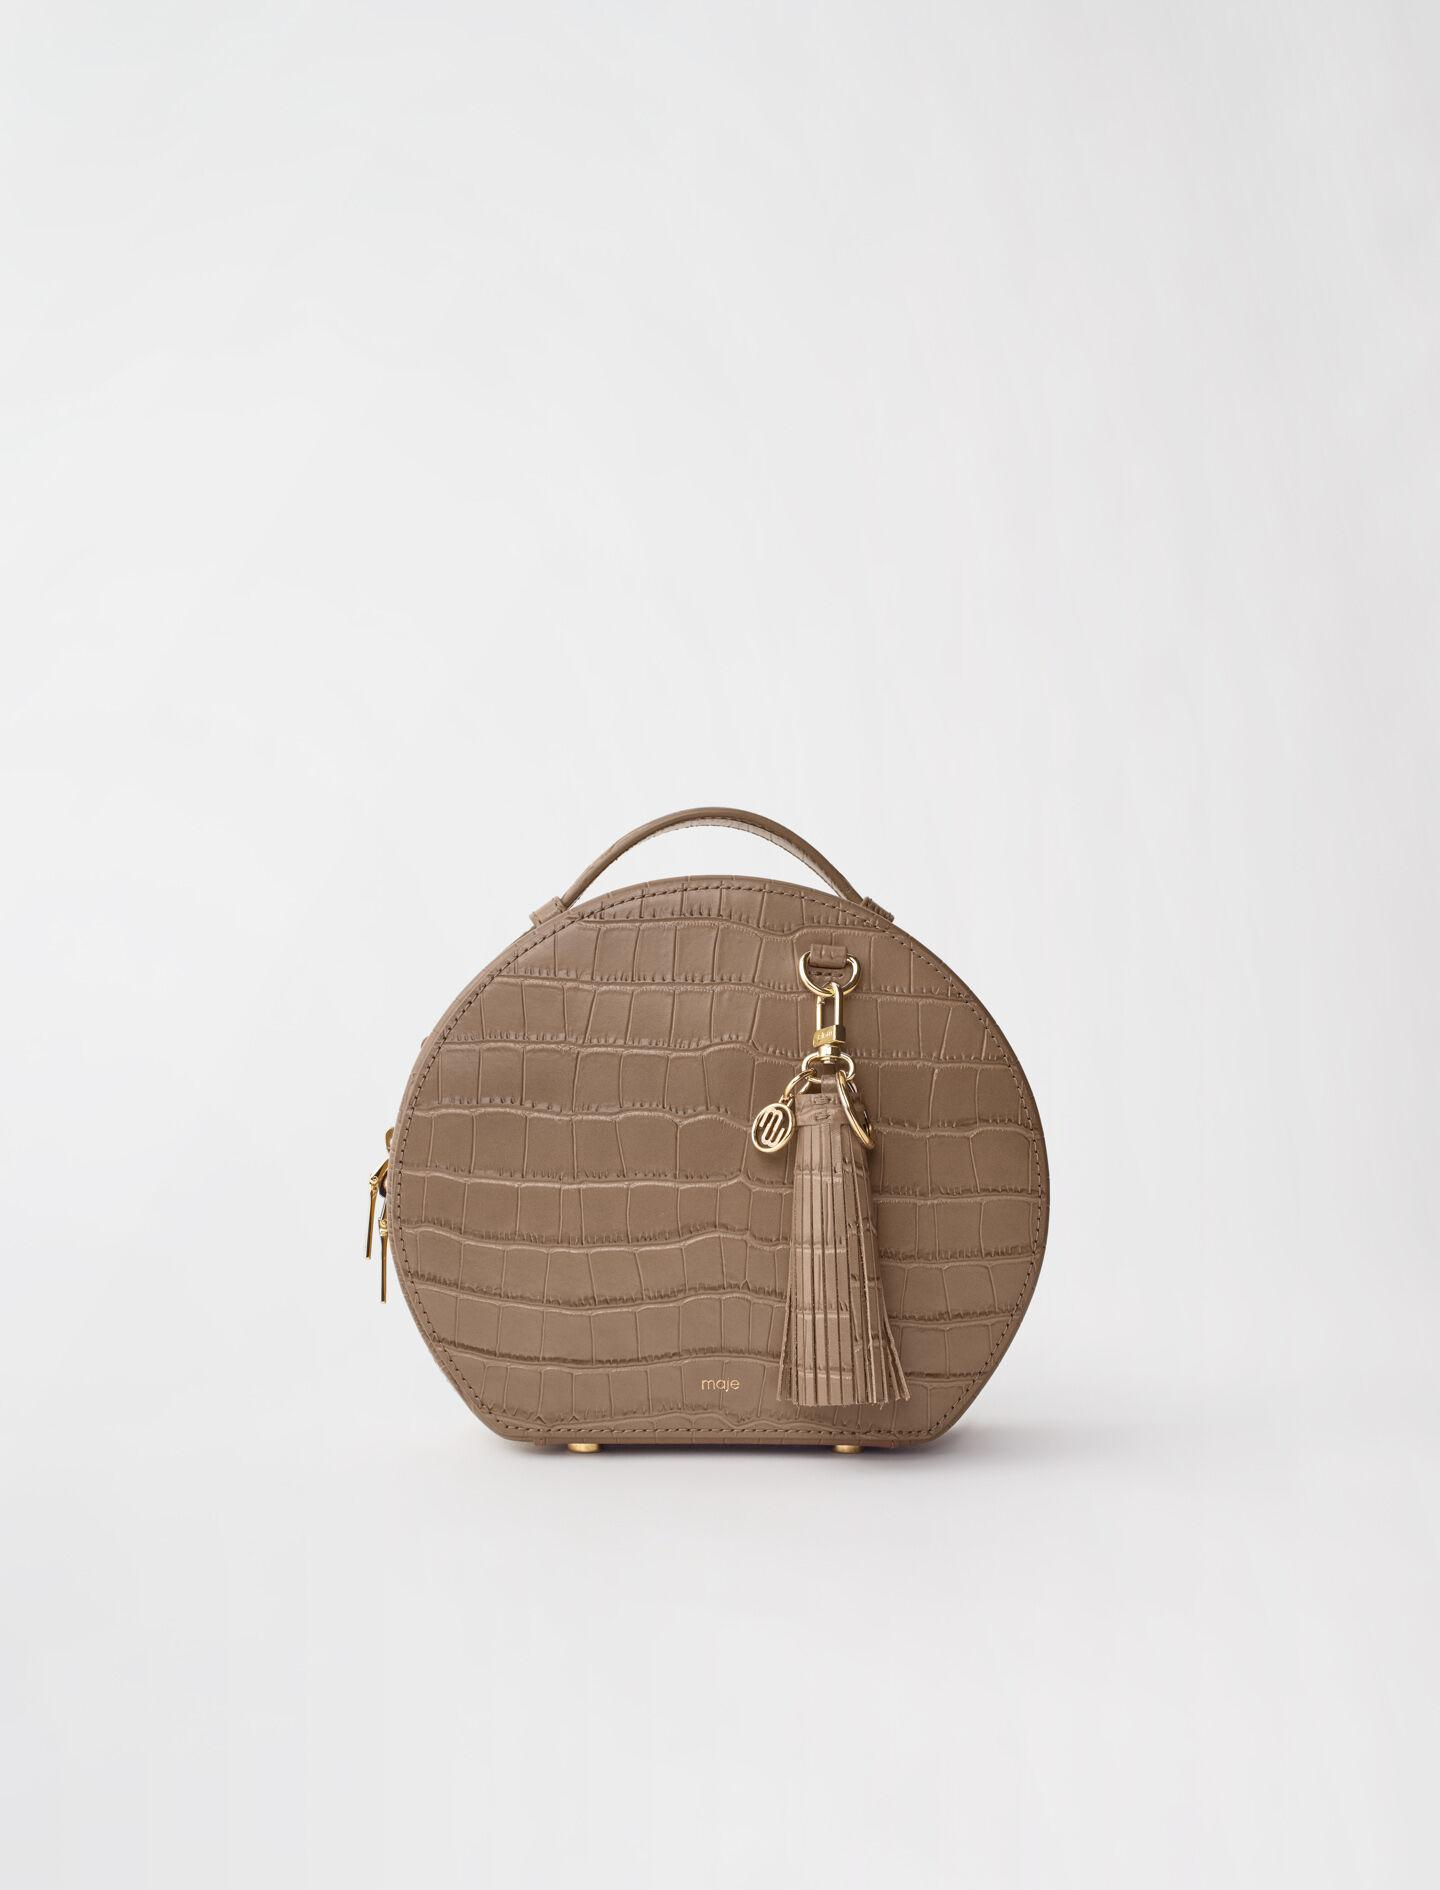 HATBOX BAG IN EMBOSSED LEATHER